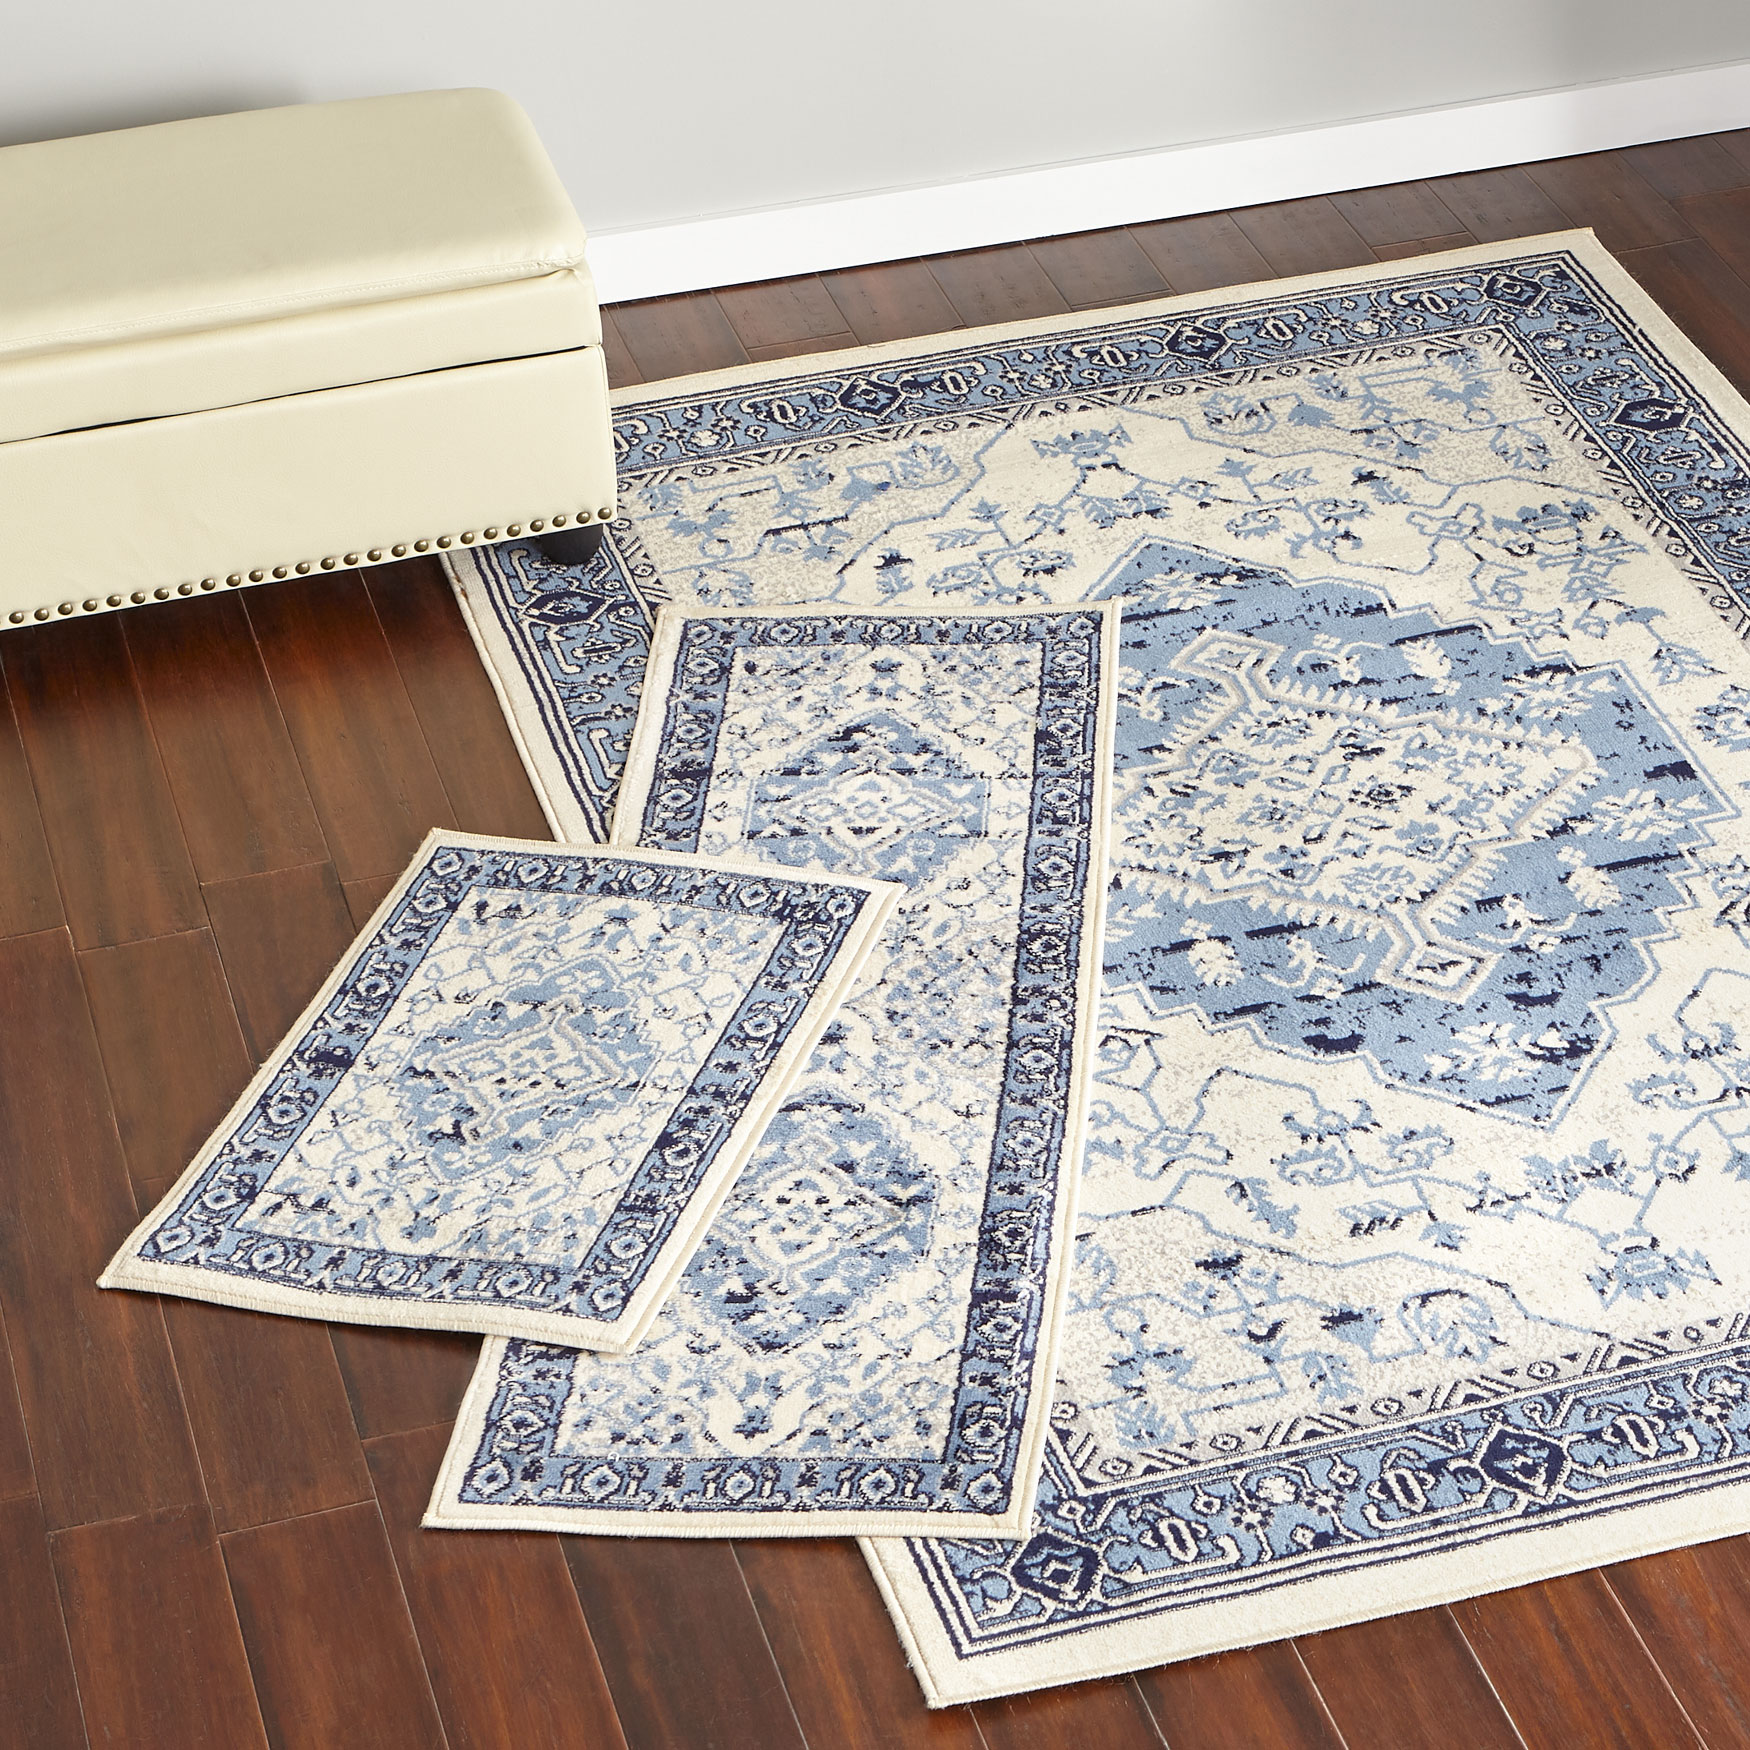 Shiraz 3-Pc. Rug Set with Runner, BLUE